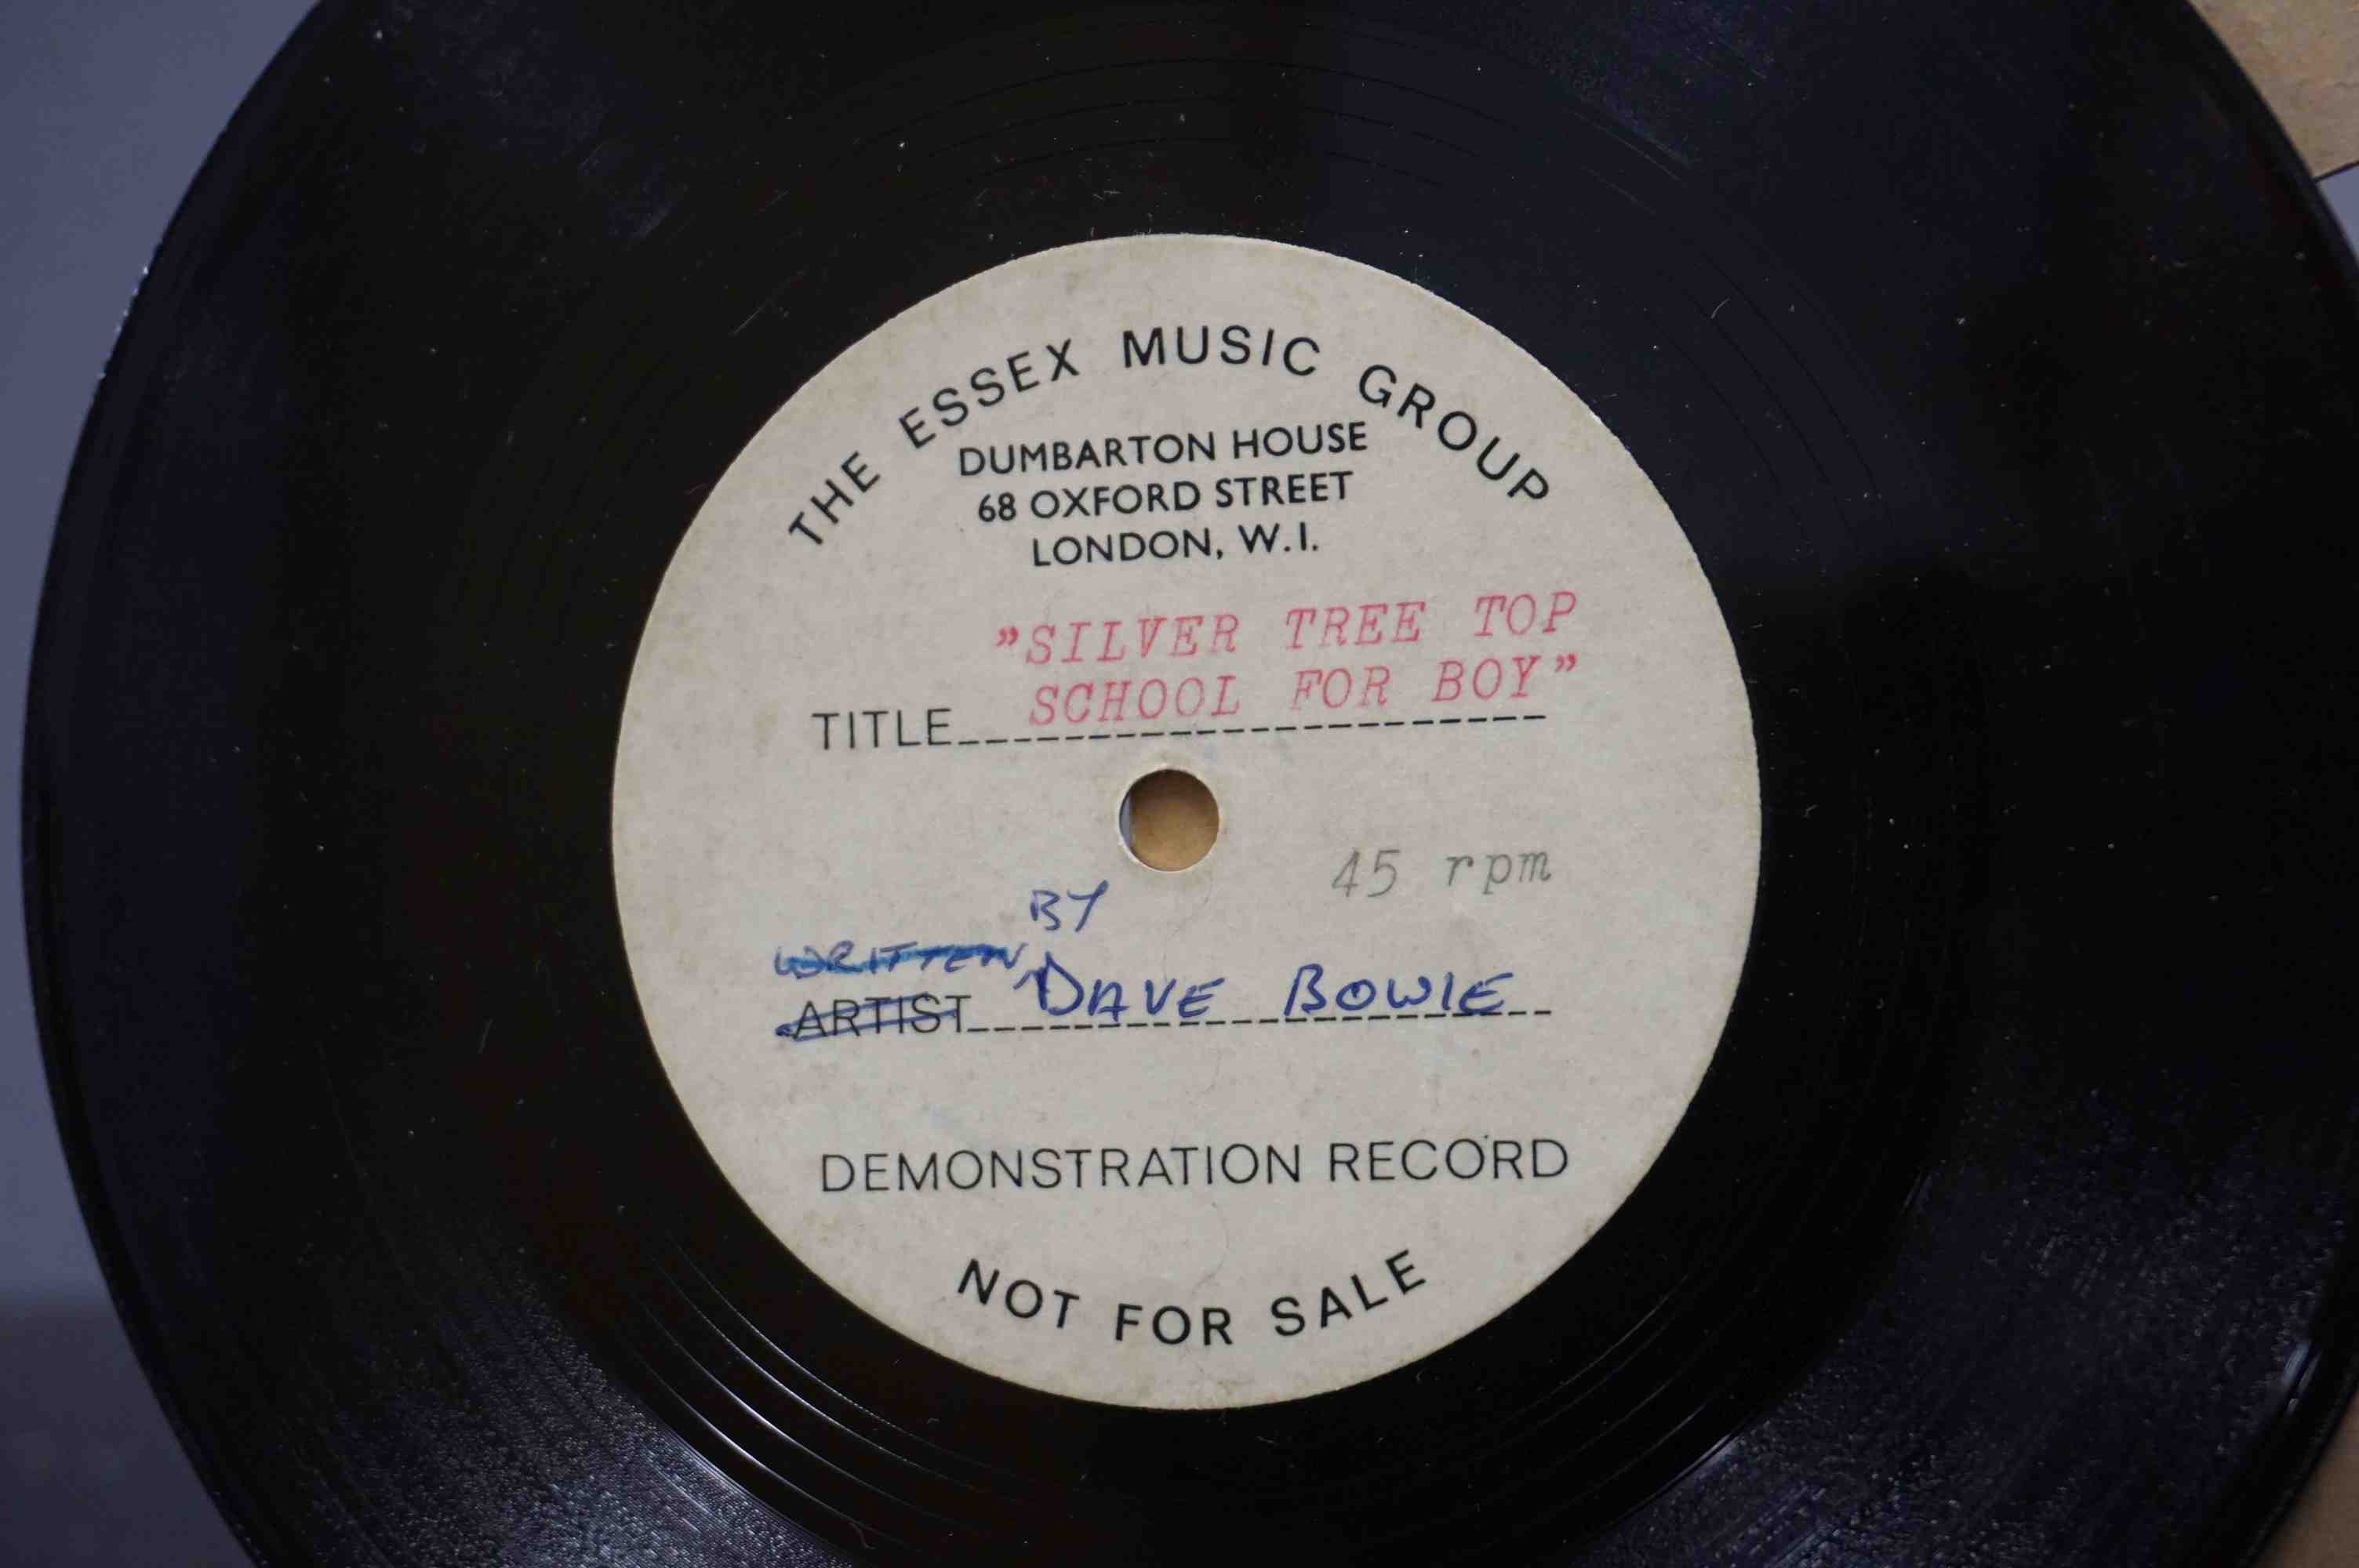 Vinyl - David Bowie - A Single sided acetate demo for the song ' Silver Tree Top School For - Image 2 of 5